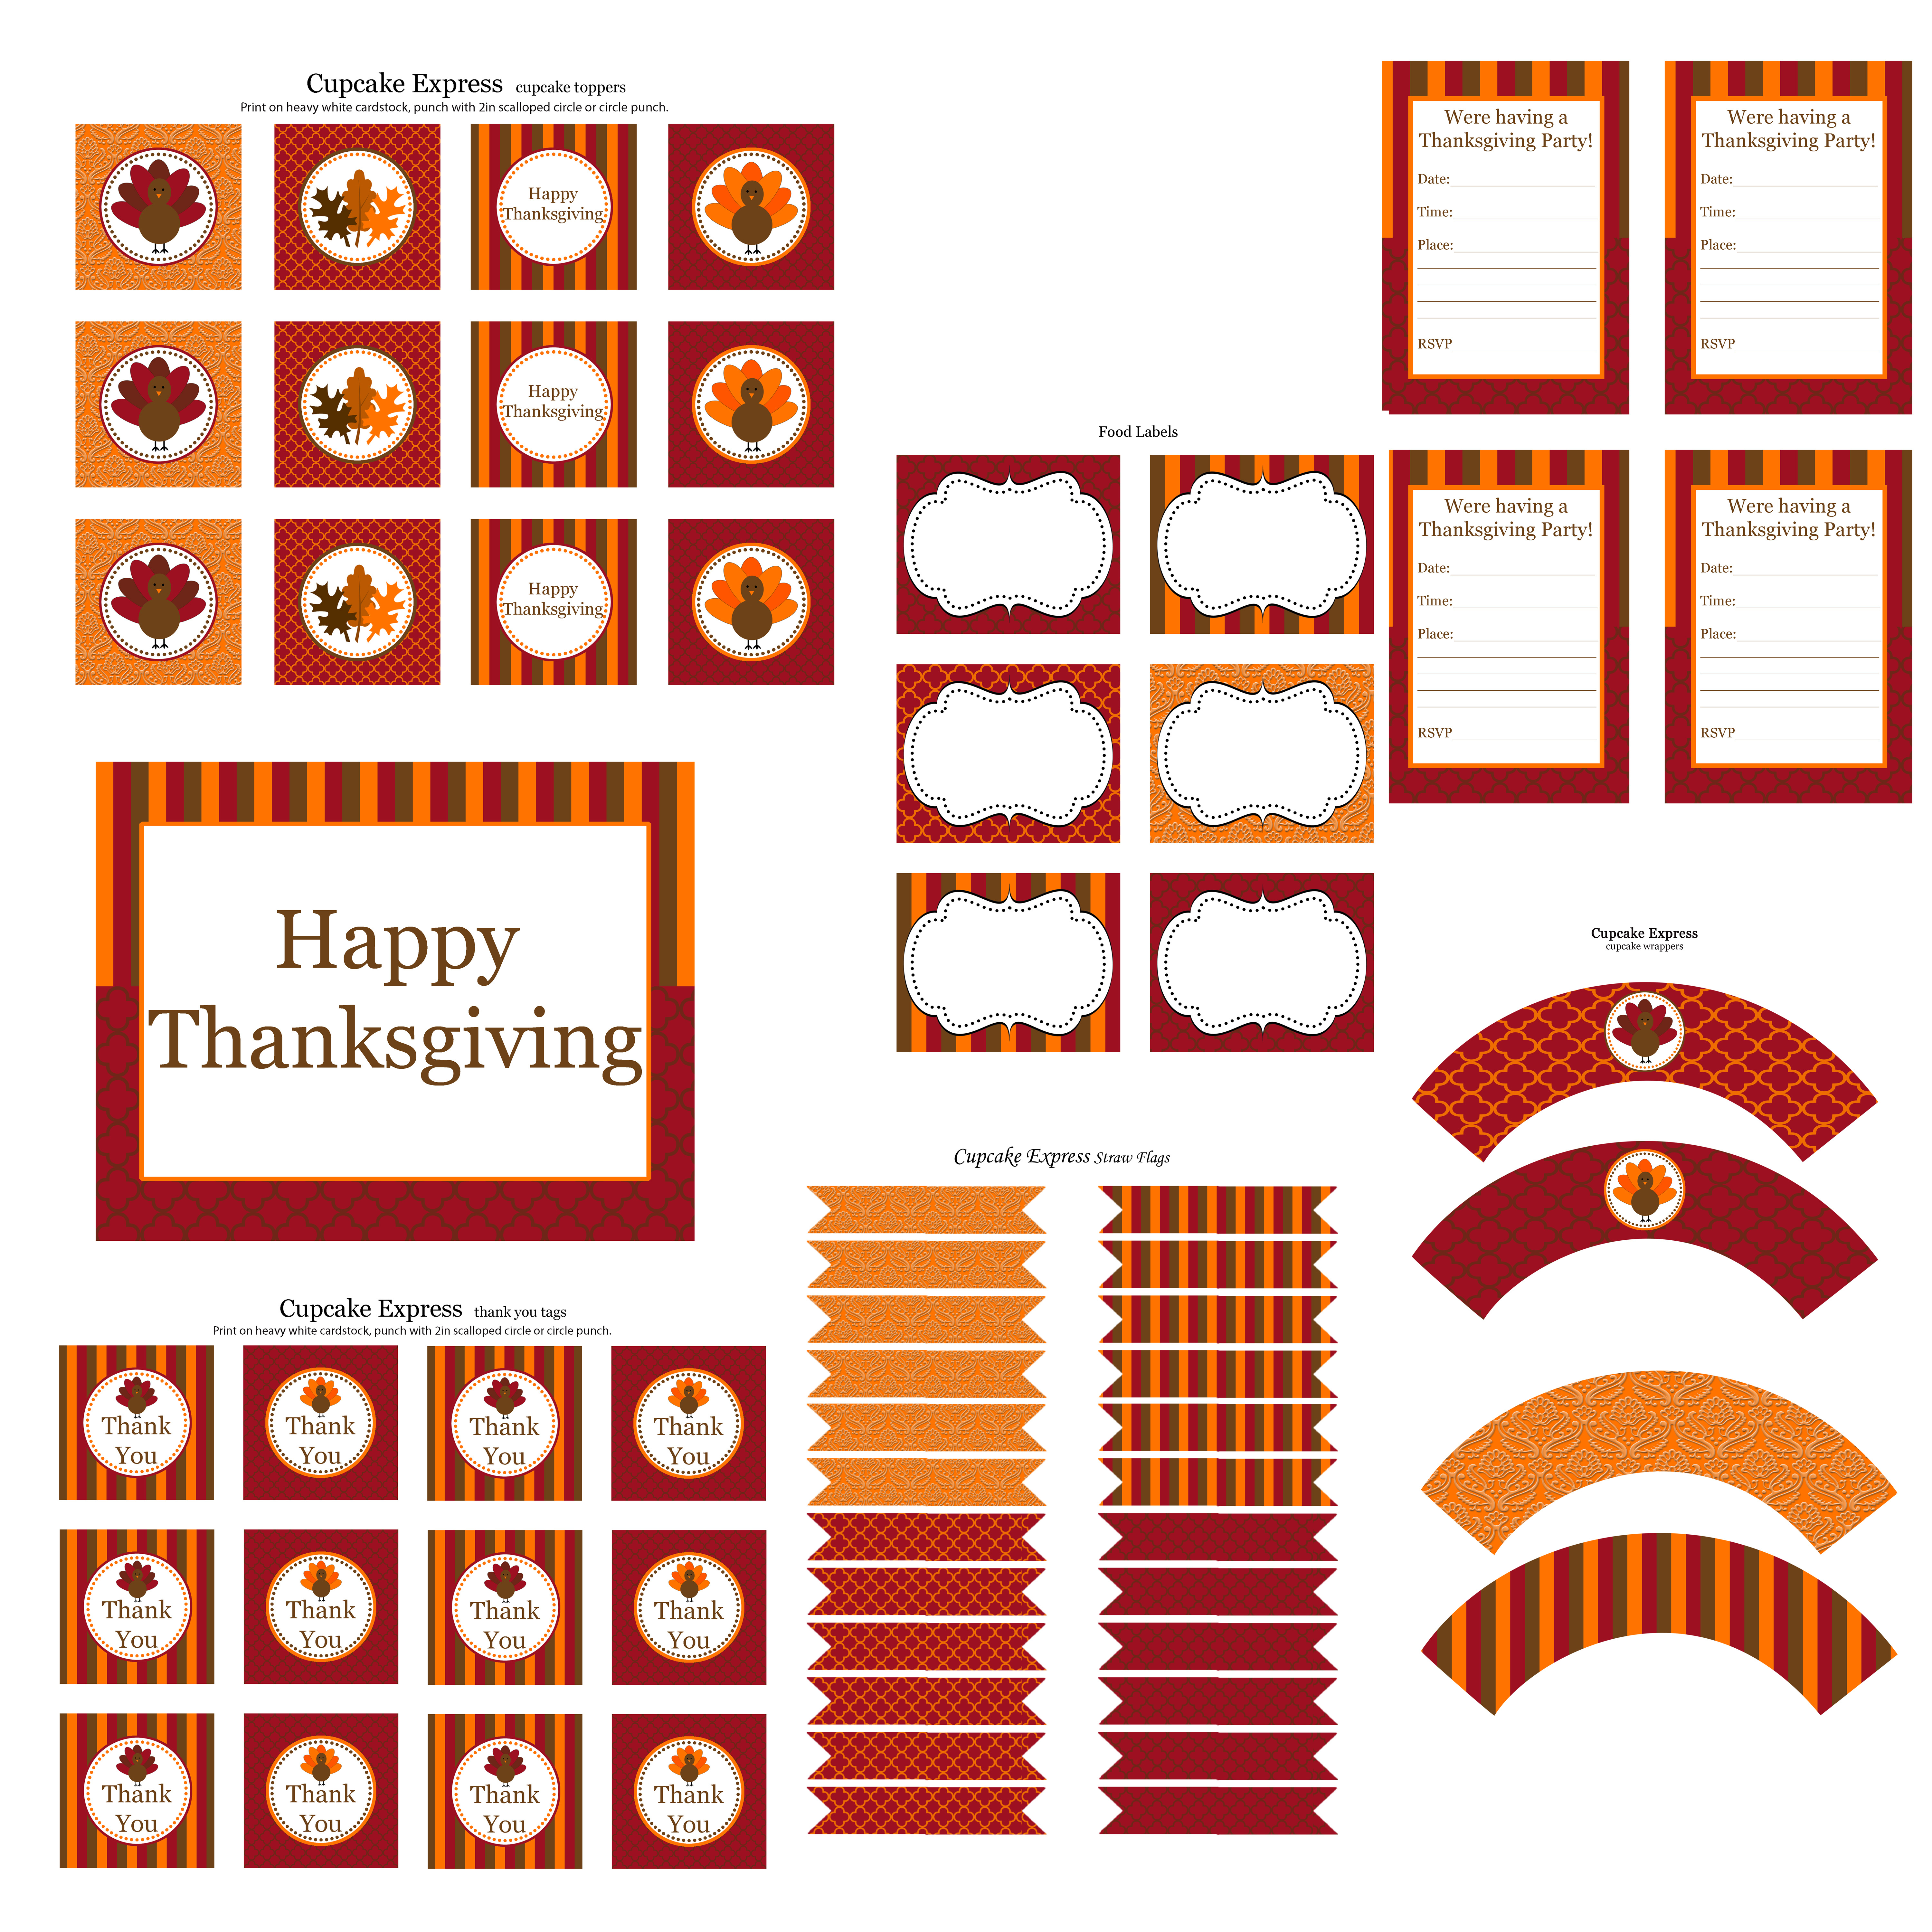 Free Thanksgiving Party Printables From Cupcake Express   Catch My Party - Thanksgiving Cupcake Toppers Printable Free